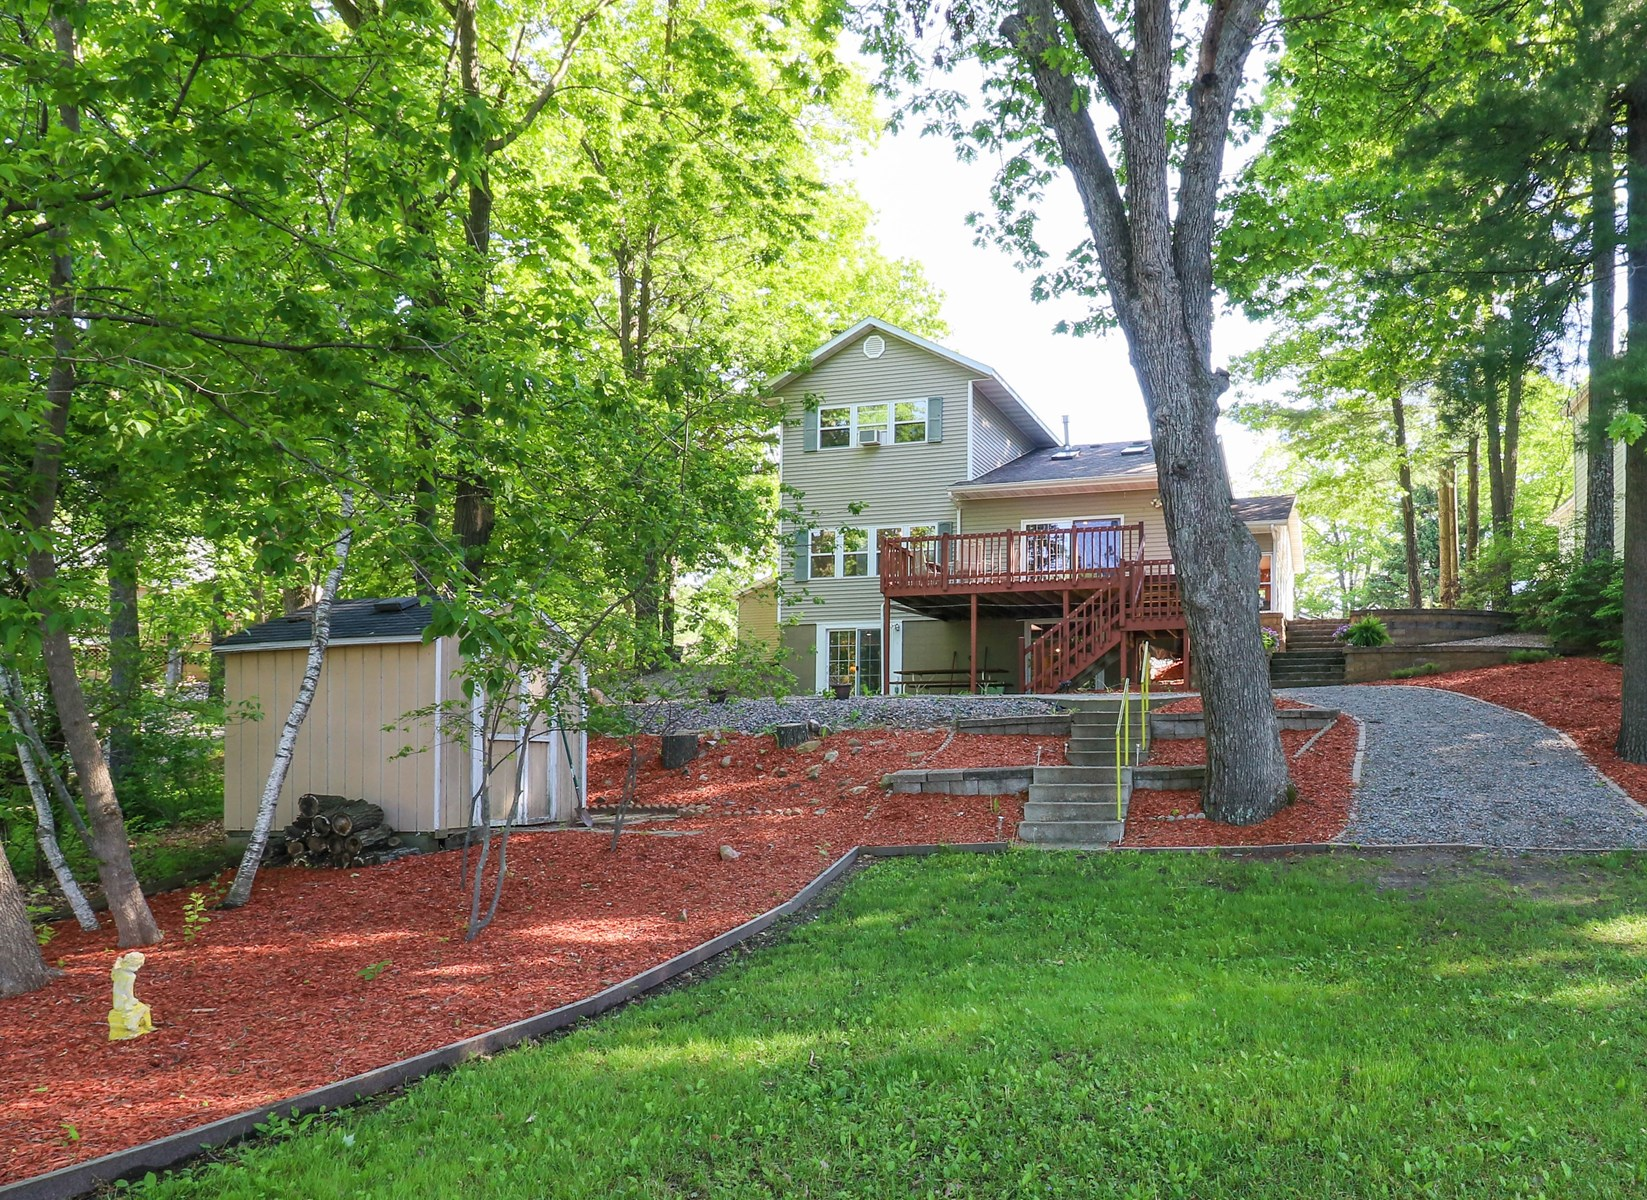 Chain O' Lakes Home for sale Waupaca, WI - Lakefront Home